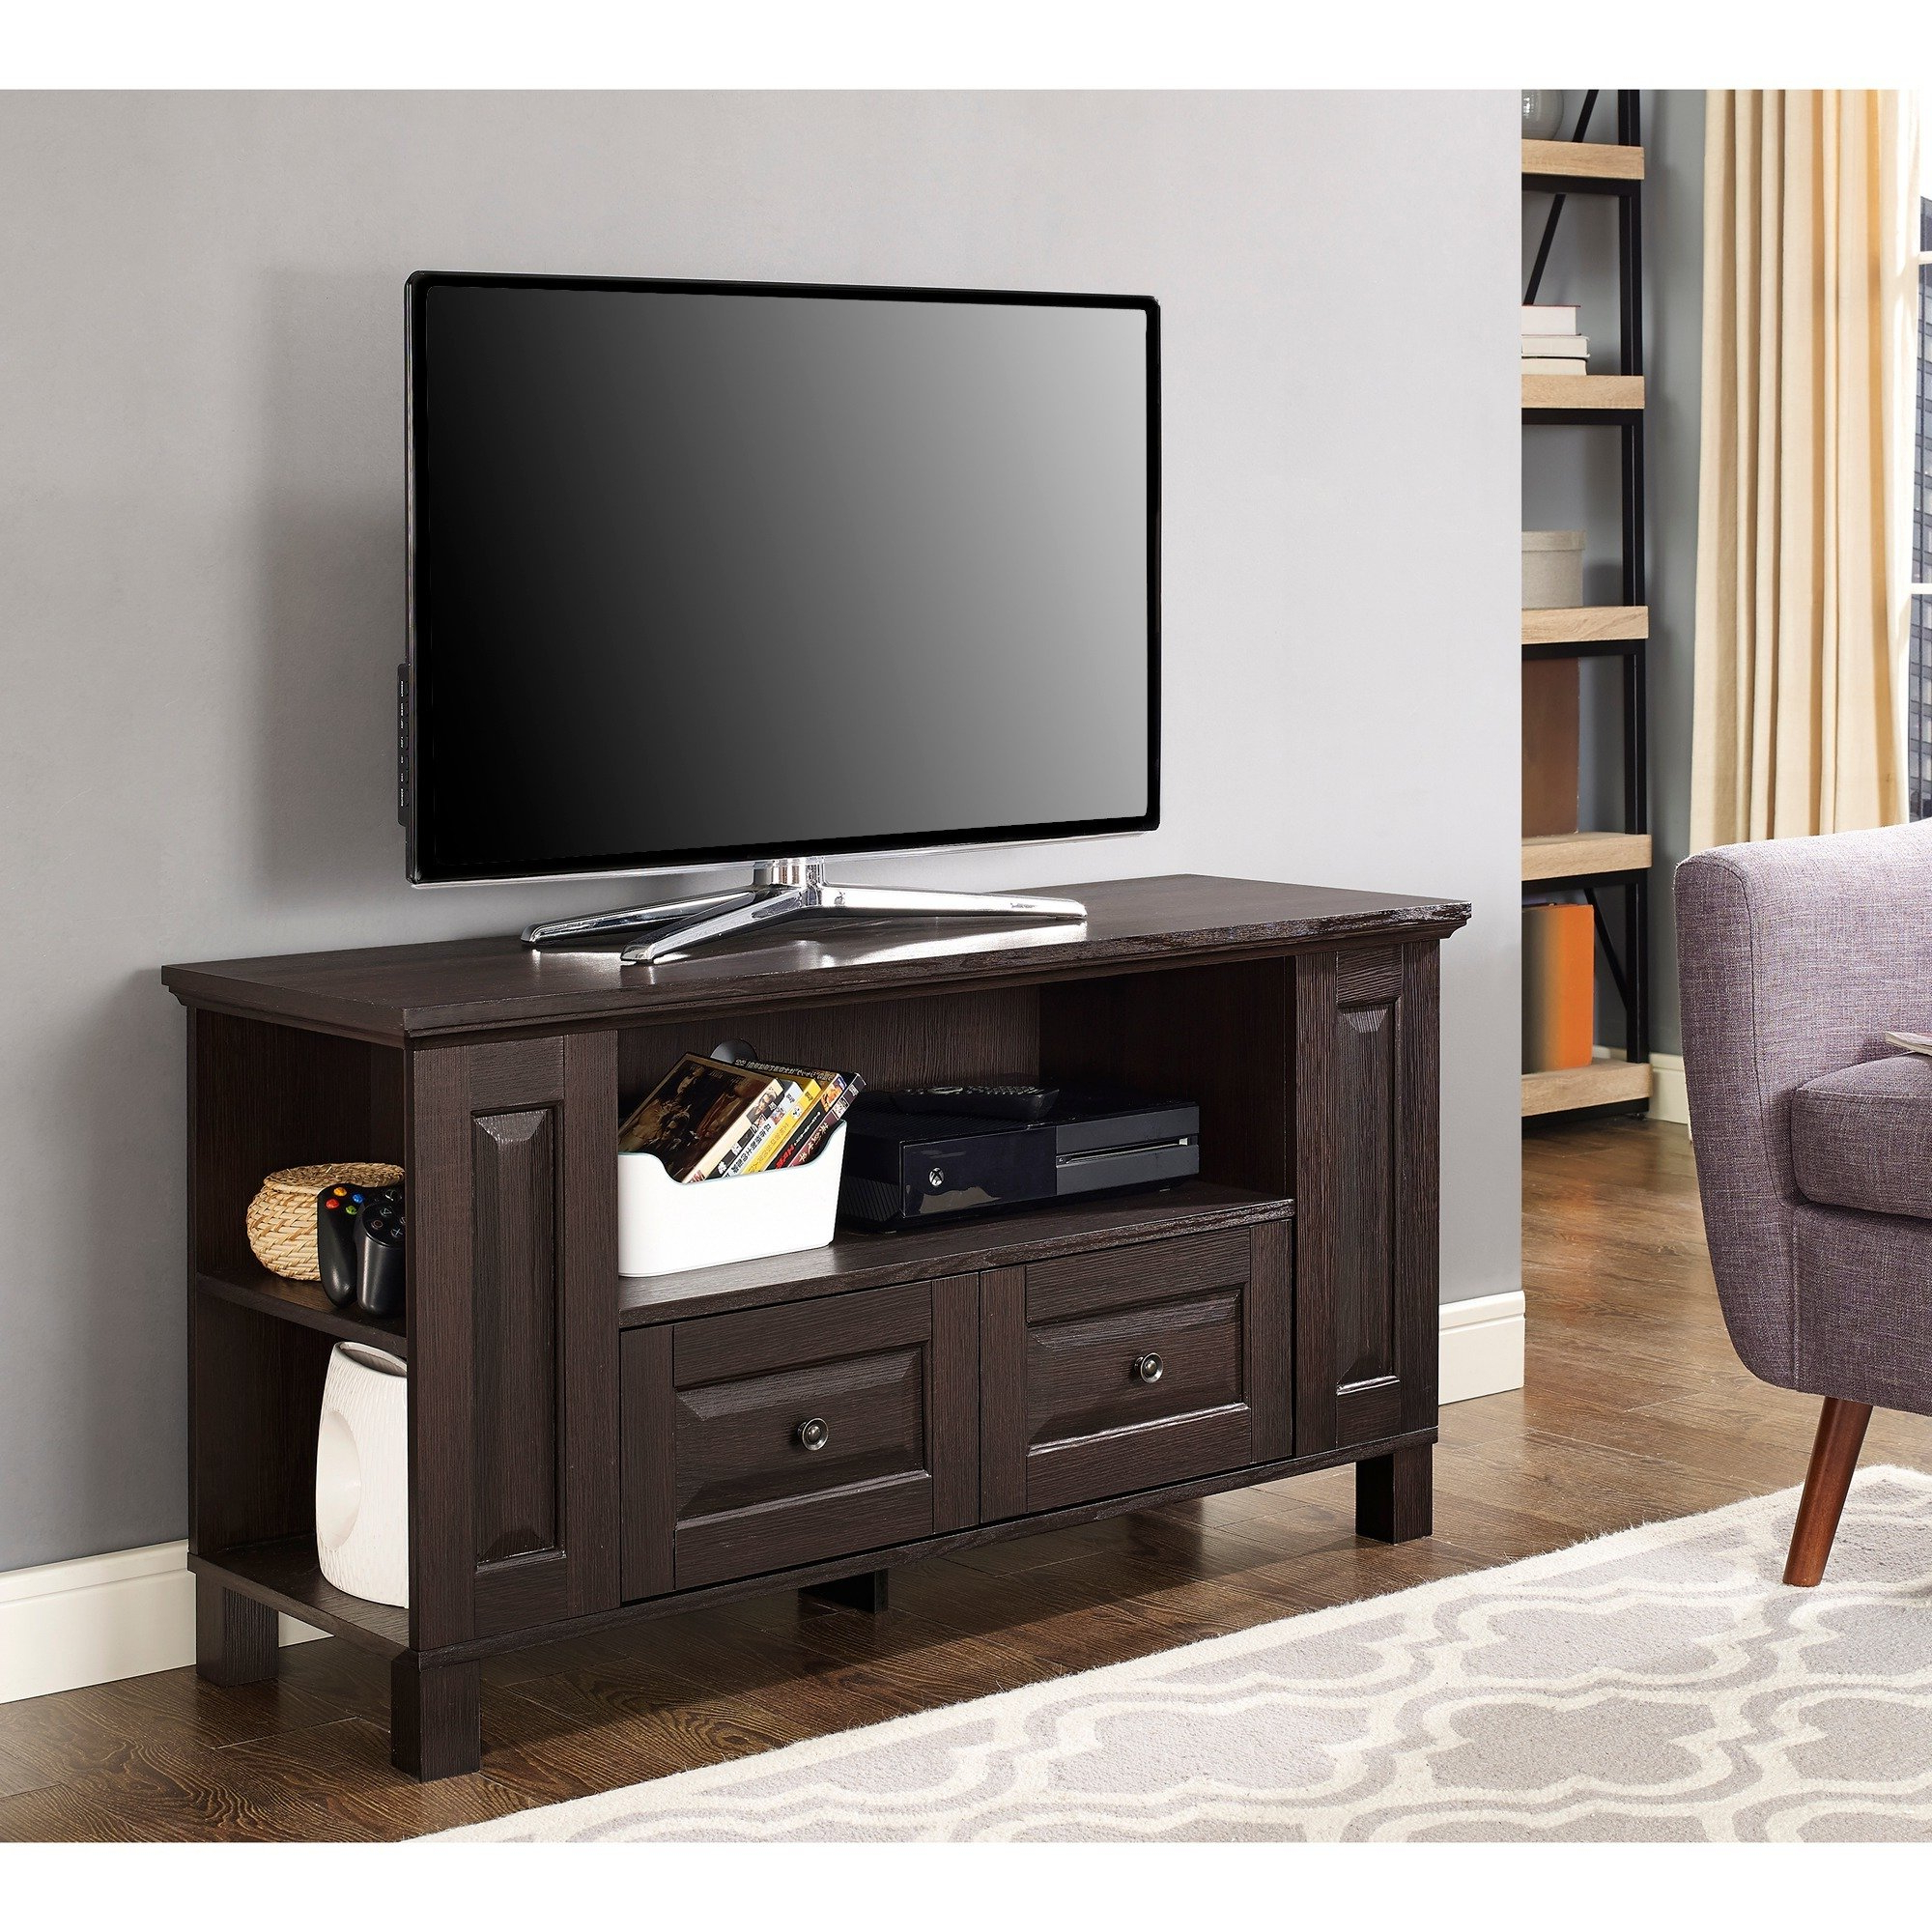 "Widely Used Shop 44"" Tv Stand Storage Console – Espresso – 44 X 16 X 23H – Free With Regard To Storage Tv Stands (View 19 of 20)"